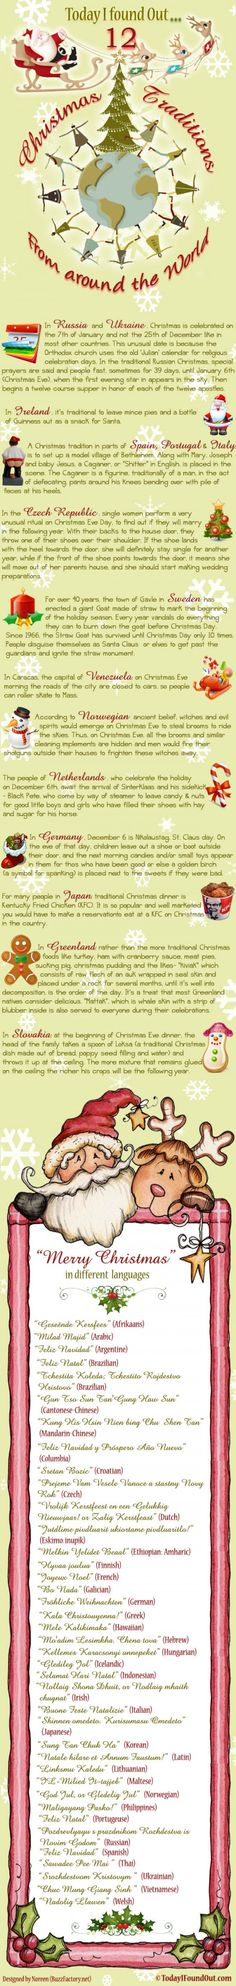 12 christmas traditions from around the world ! neat facts ! who knew !